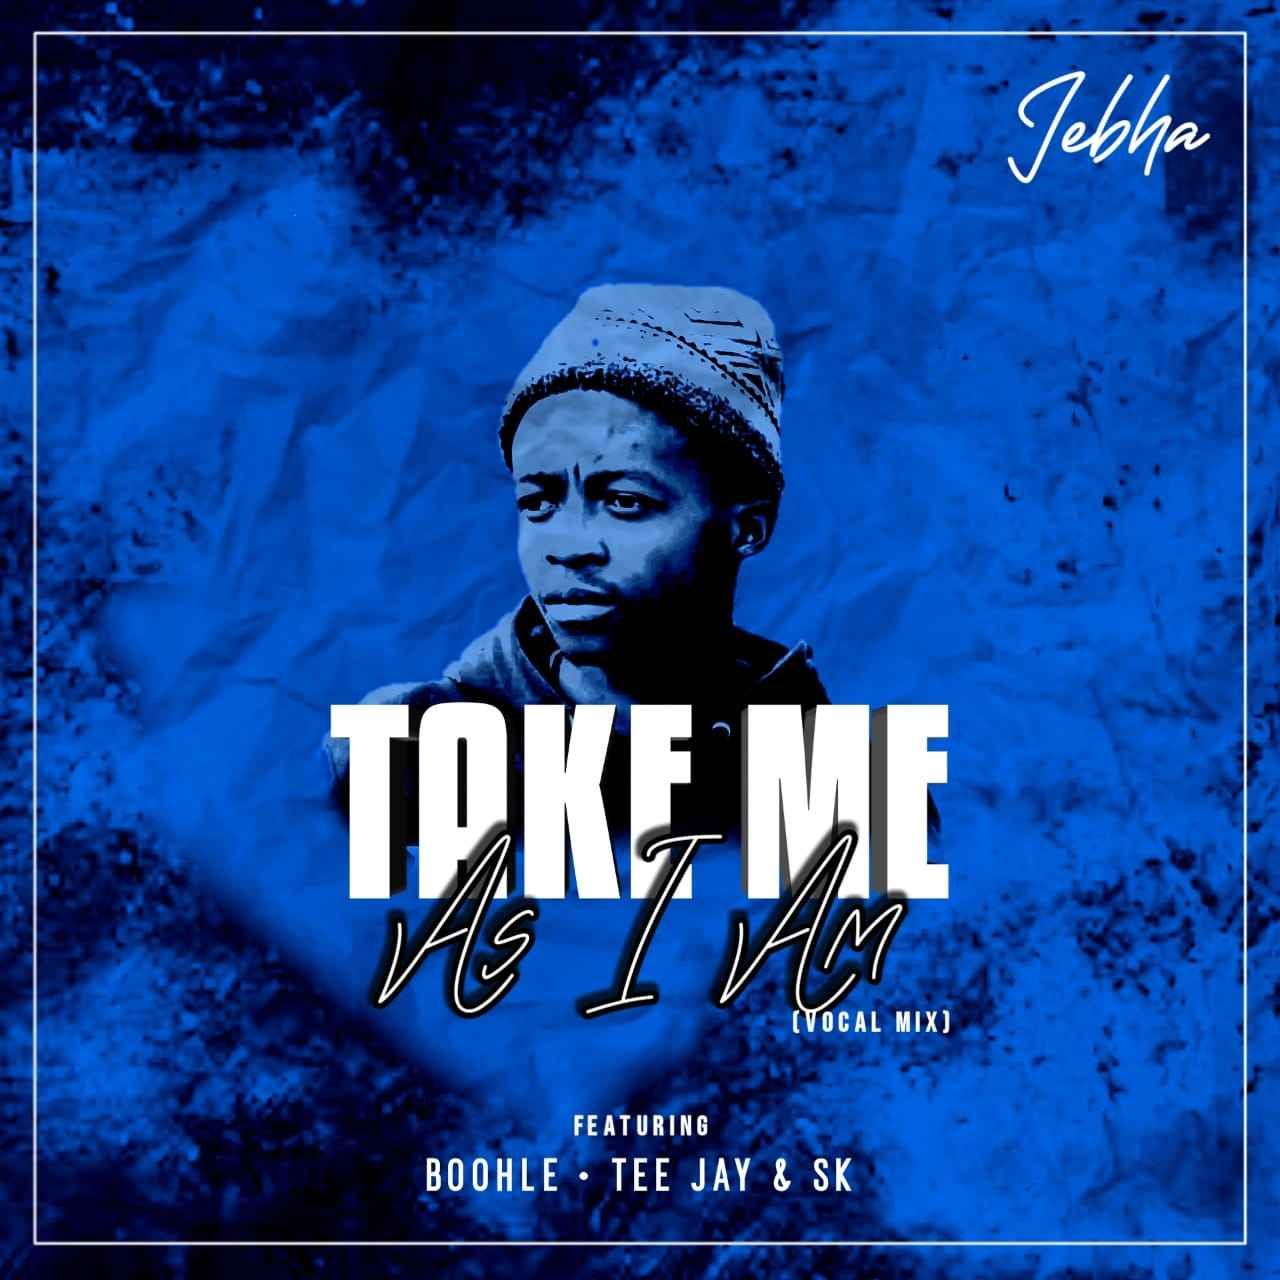 Jebha Take Me As I Am (Vocal Mix) ft Boohle, Tee Jay & Sk